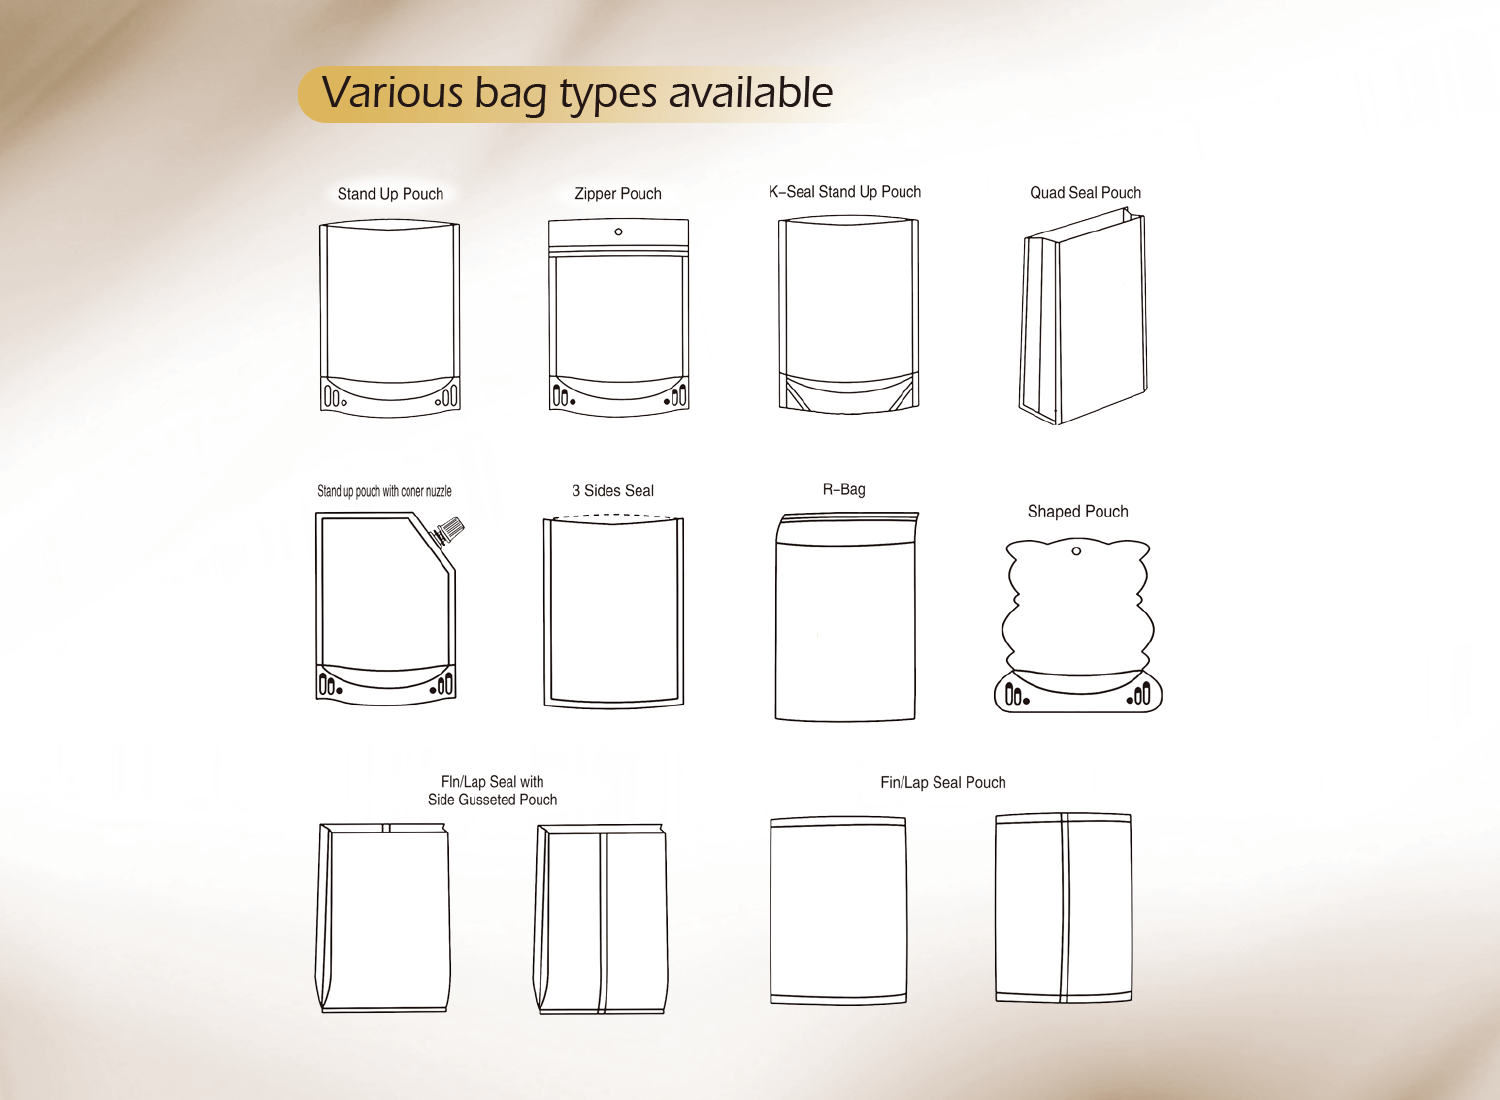 CO-EXTRUDED & LAMINATED-03 bag types